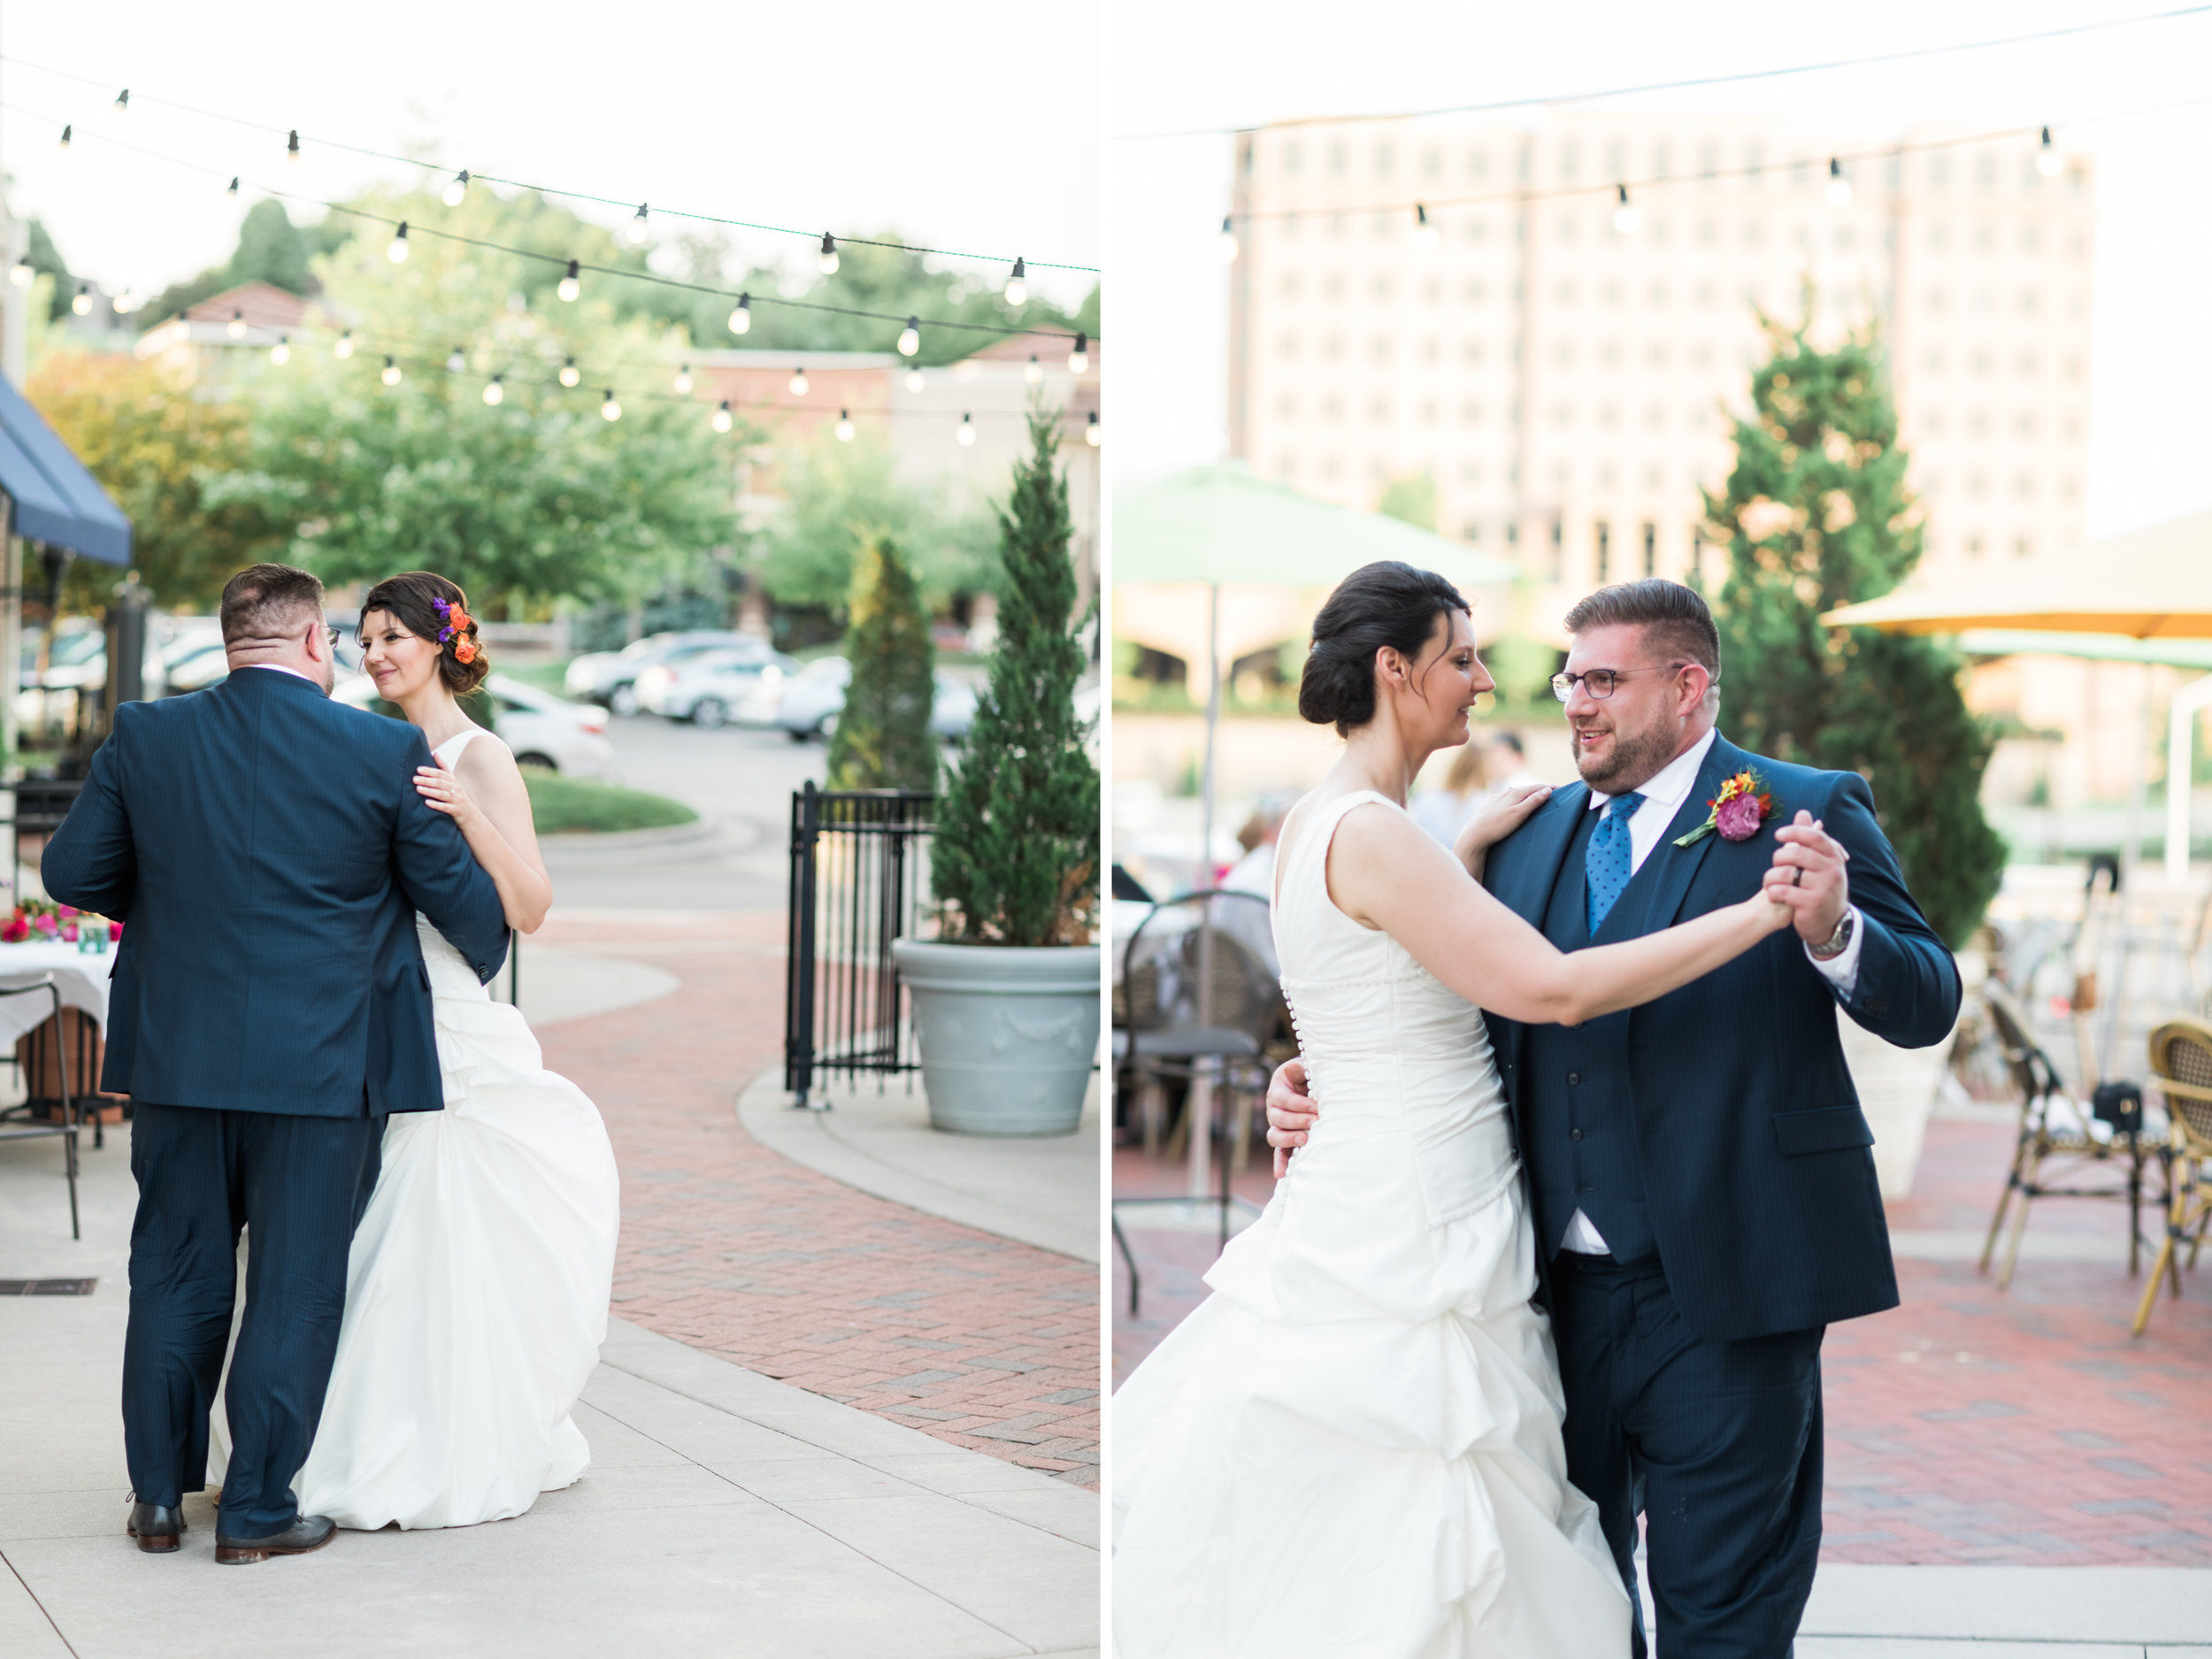 North KC wedding photographer 22.jpg